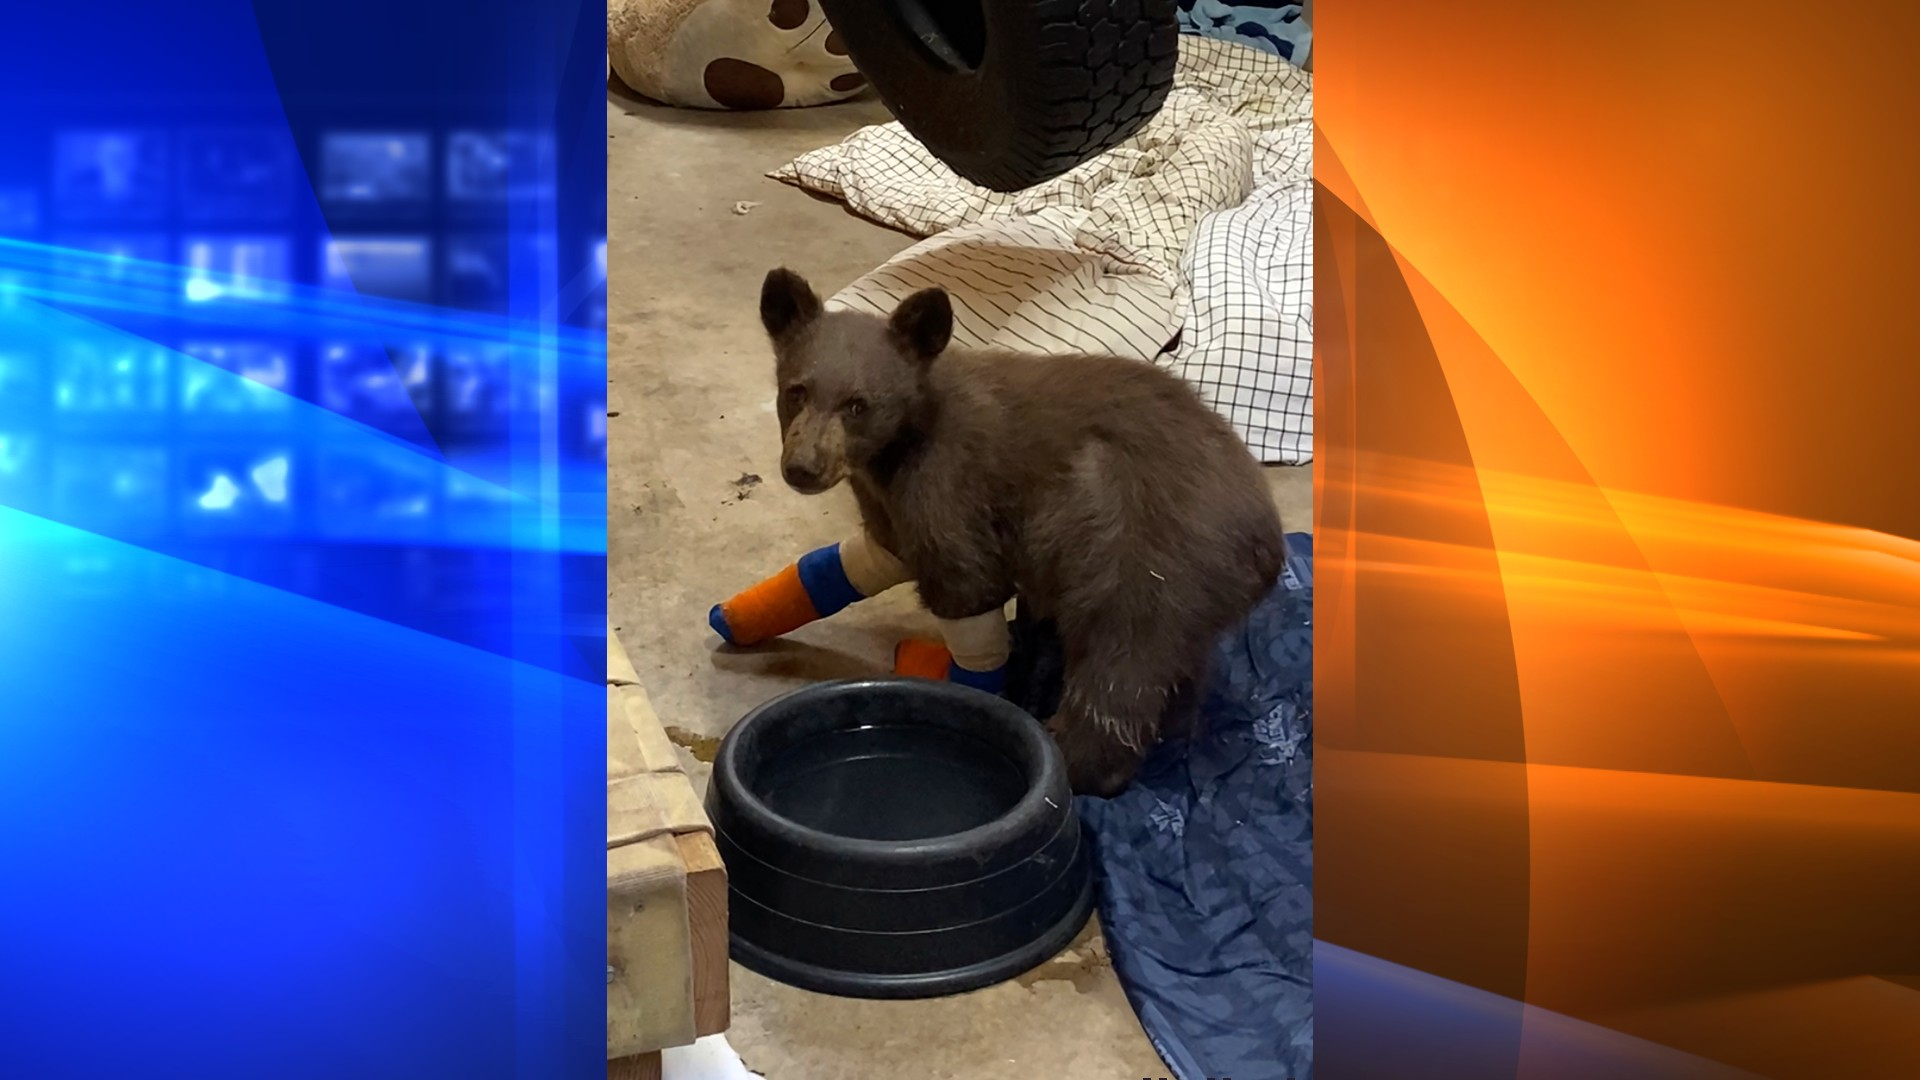 In this July 31, 2021, file photo provided by Lake Tahoe Wildlife Care, is a bear cub that was taken in for treatment to Lake Tahoe Wildlife Care in South Lake Tahoe, Calif., after it suffered burns in a California wildfire. Officials at the wildlife center at Lake Tahoe said Thursday, Aug. 5 they're optimistic they can rescue a second time the injured bear cub that escaped from the care facility where he was being treated for burns suffered in a Sierra wildfire after he was spotted clinging to a tree in a mountain forest. (Lake Tahoe Wildlife Care via AP, File)